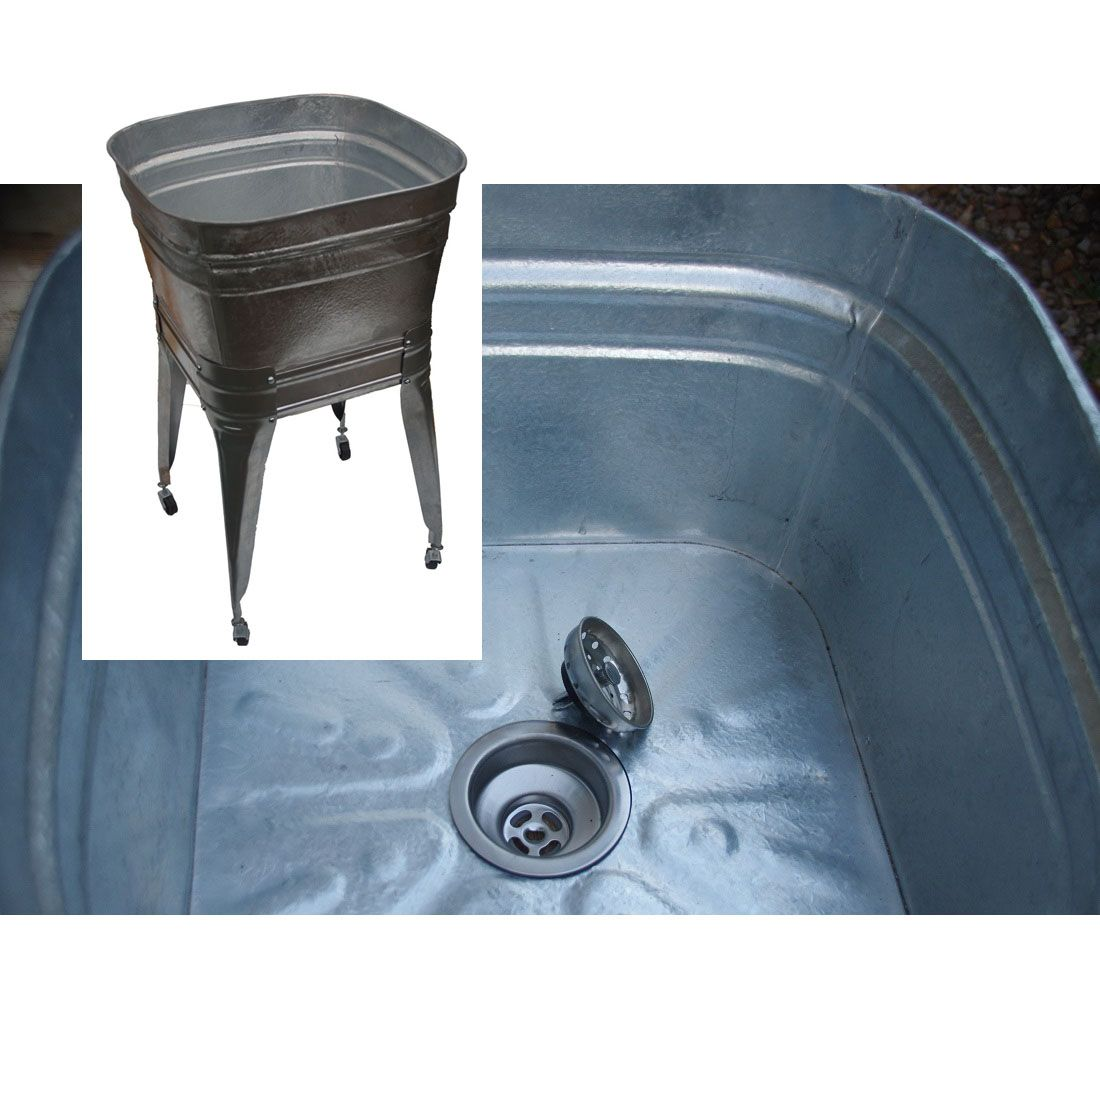 Galvanized Laundry Sink These Galvanized Utility Sinks are Double ...